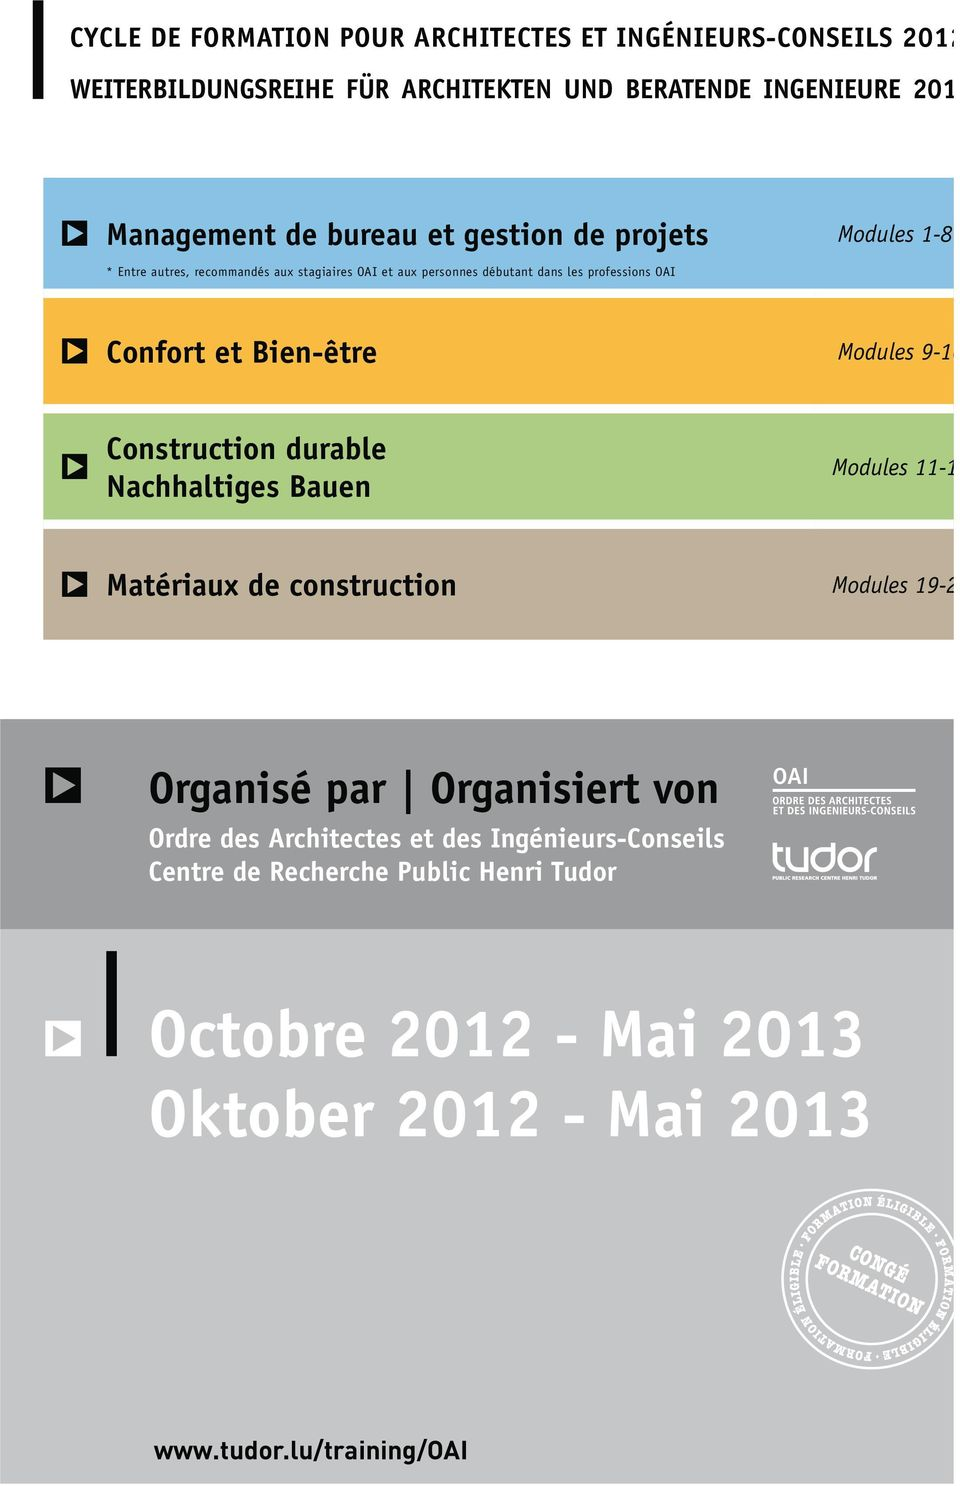 "Bien-être Modules 9-10 "" Construction durable Nachhaltiges Bauen Modules 11-1 "" Matériaux de construction Modules 19-2 "" Organisé par Organisiert von"